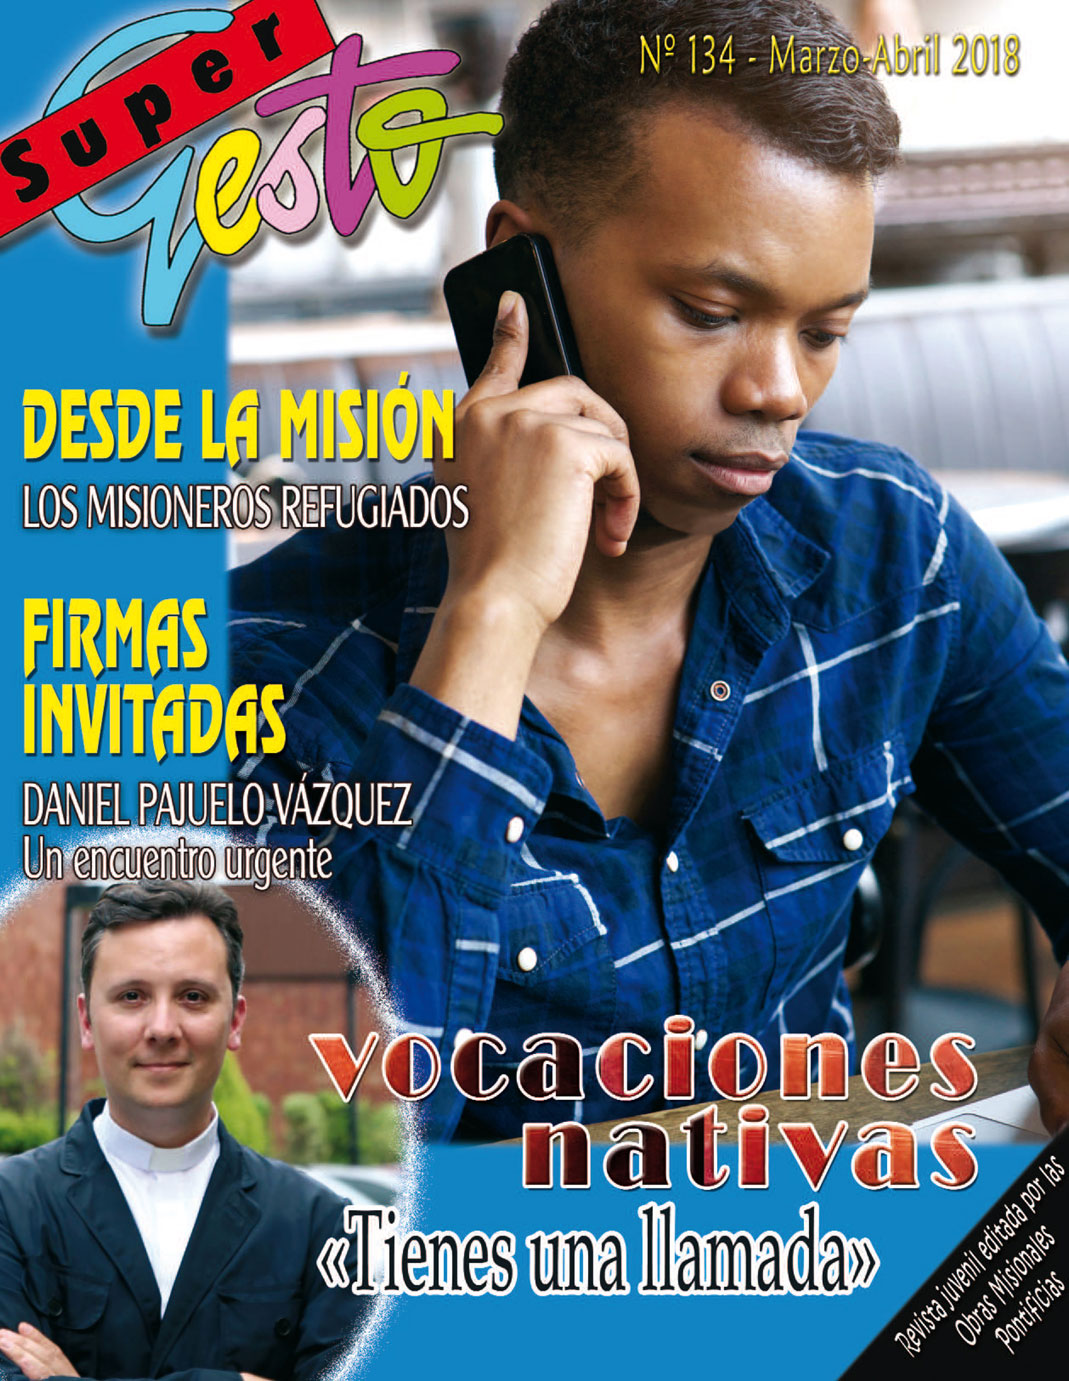 REVISTA SUPERGESTO JÓVENES